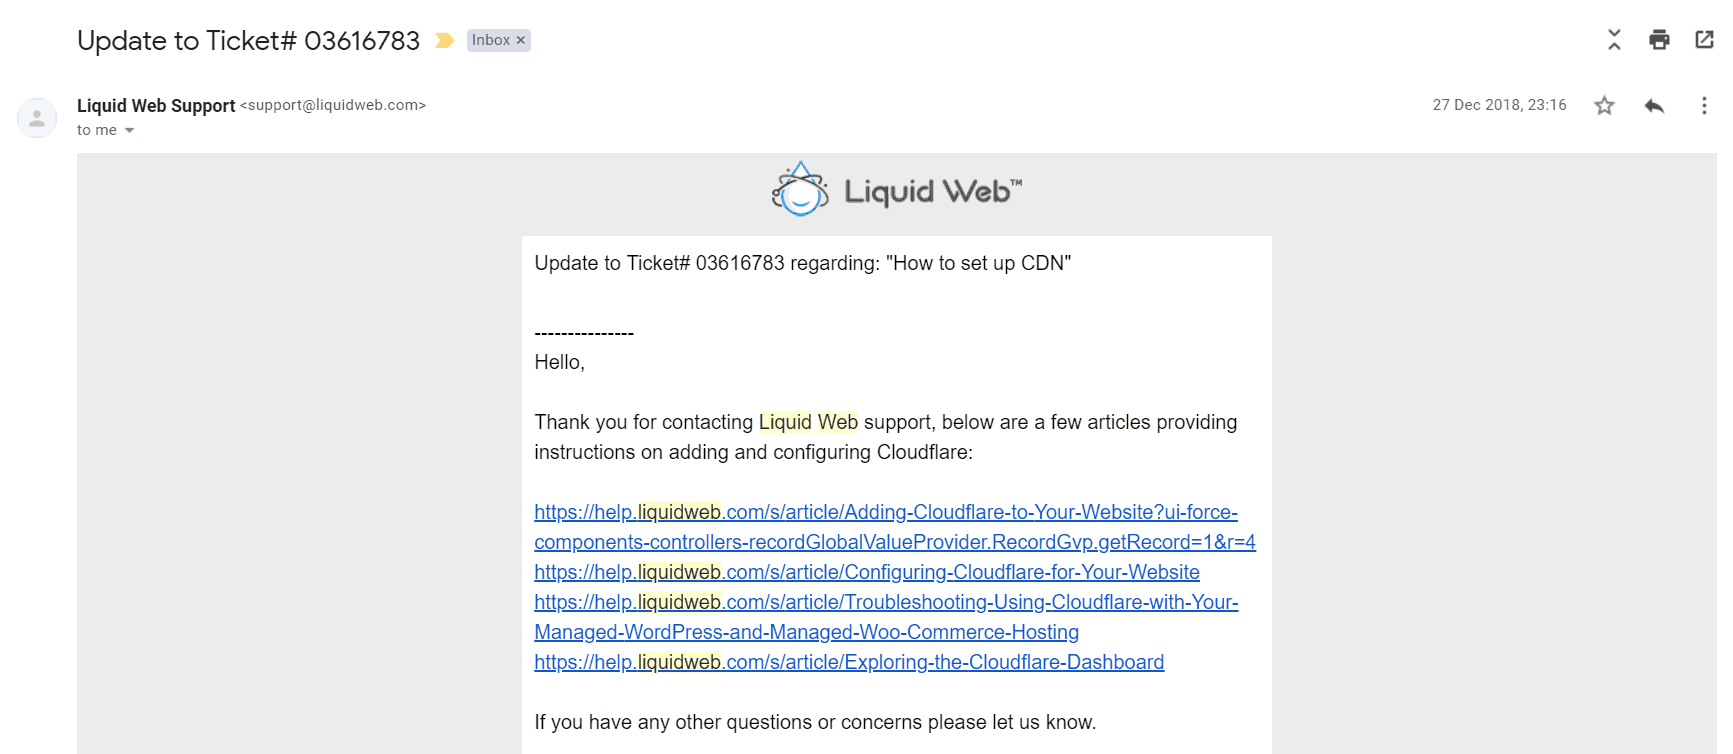 How-to-Connect-a-Domain-and-Install-WordPress-on-Liquid-Web-image20